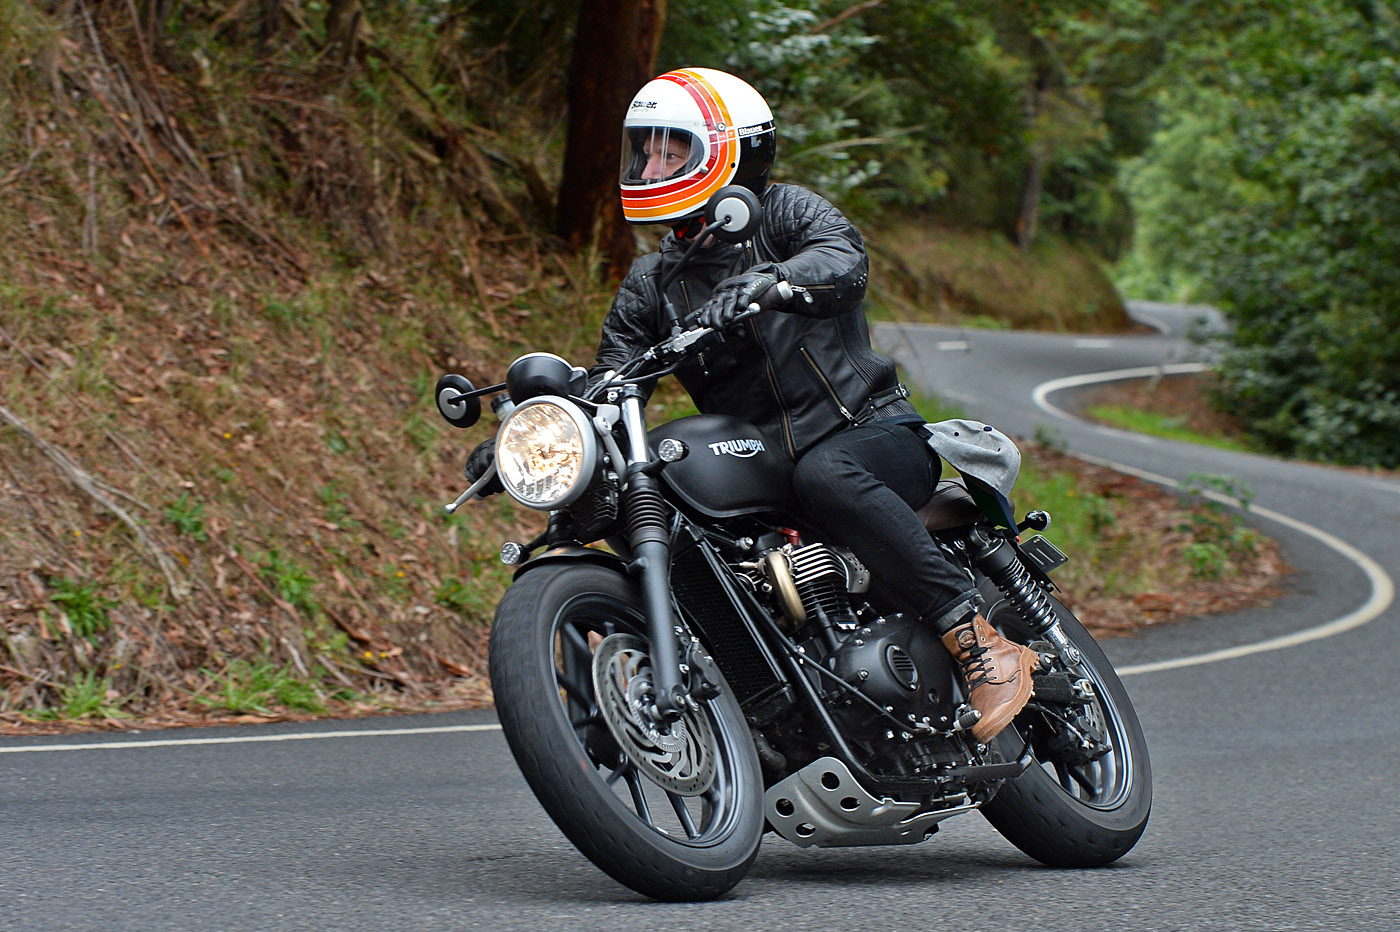 Triumph Bonneville Street Twin Ride Review Return Of The Cafe Racers